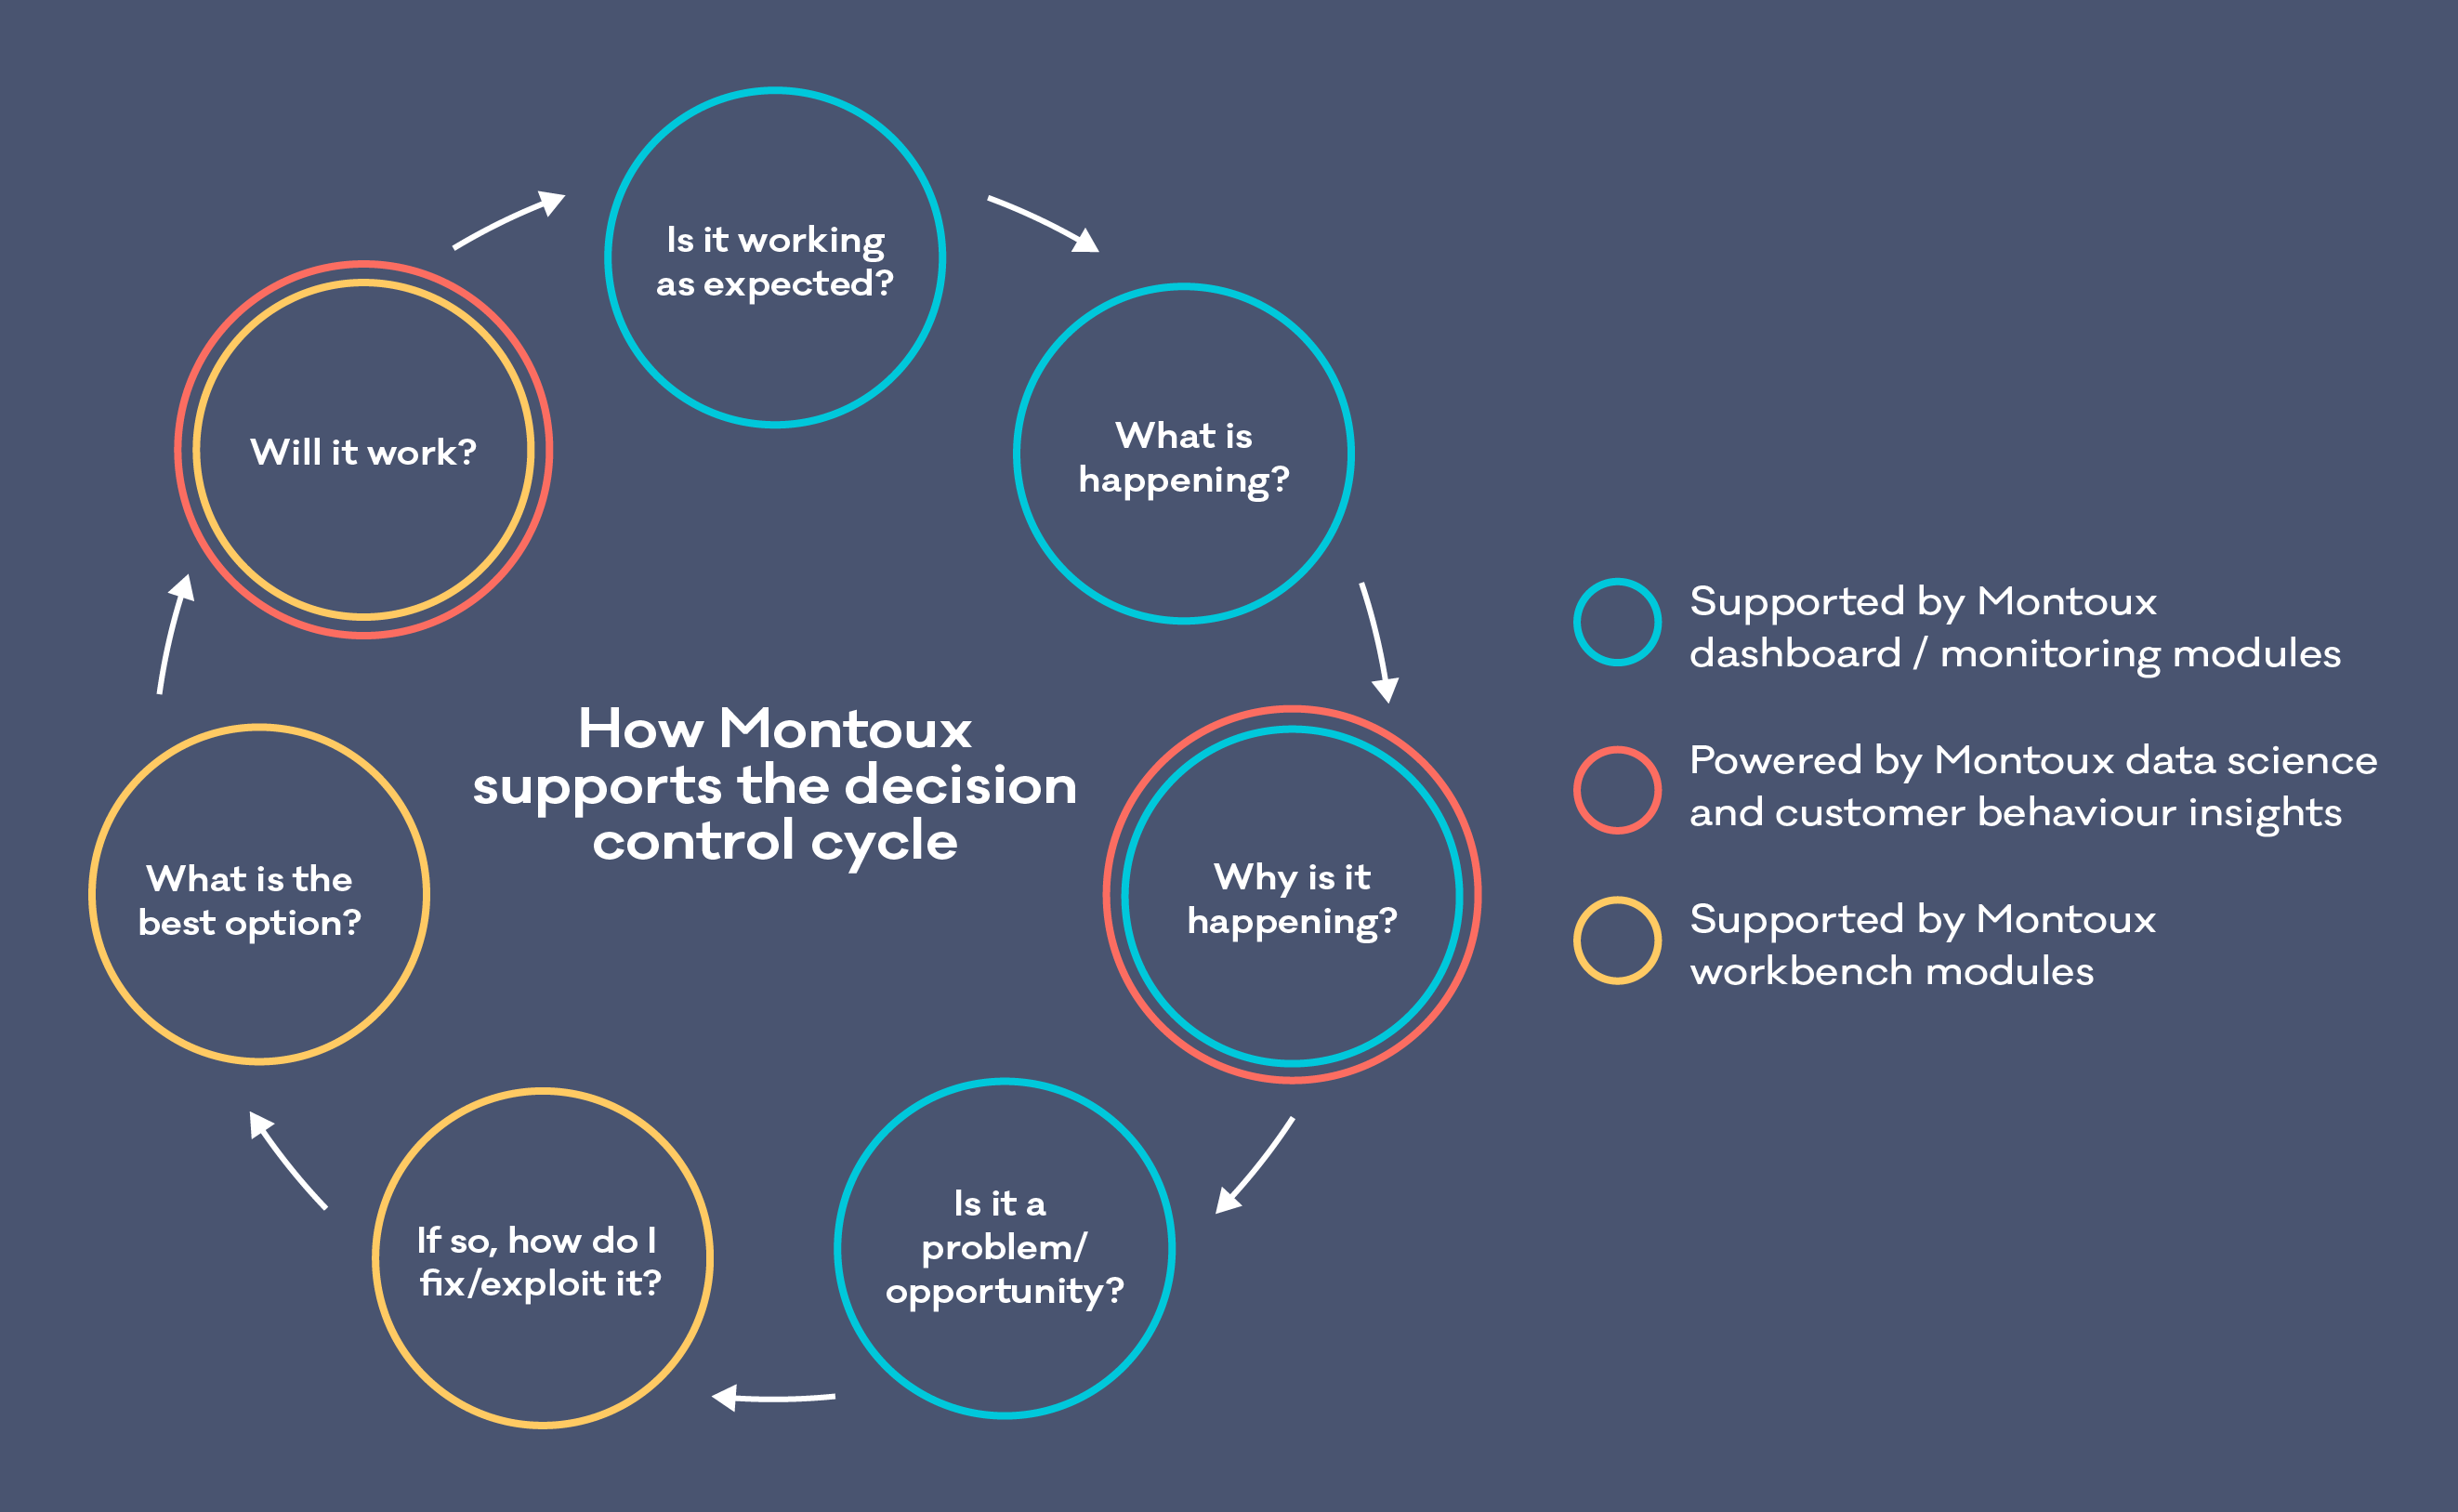 Montoux supports the decision control cycle